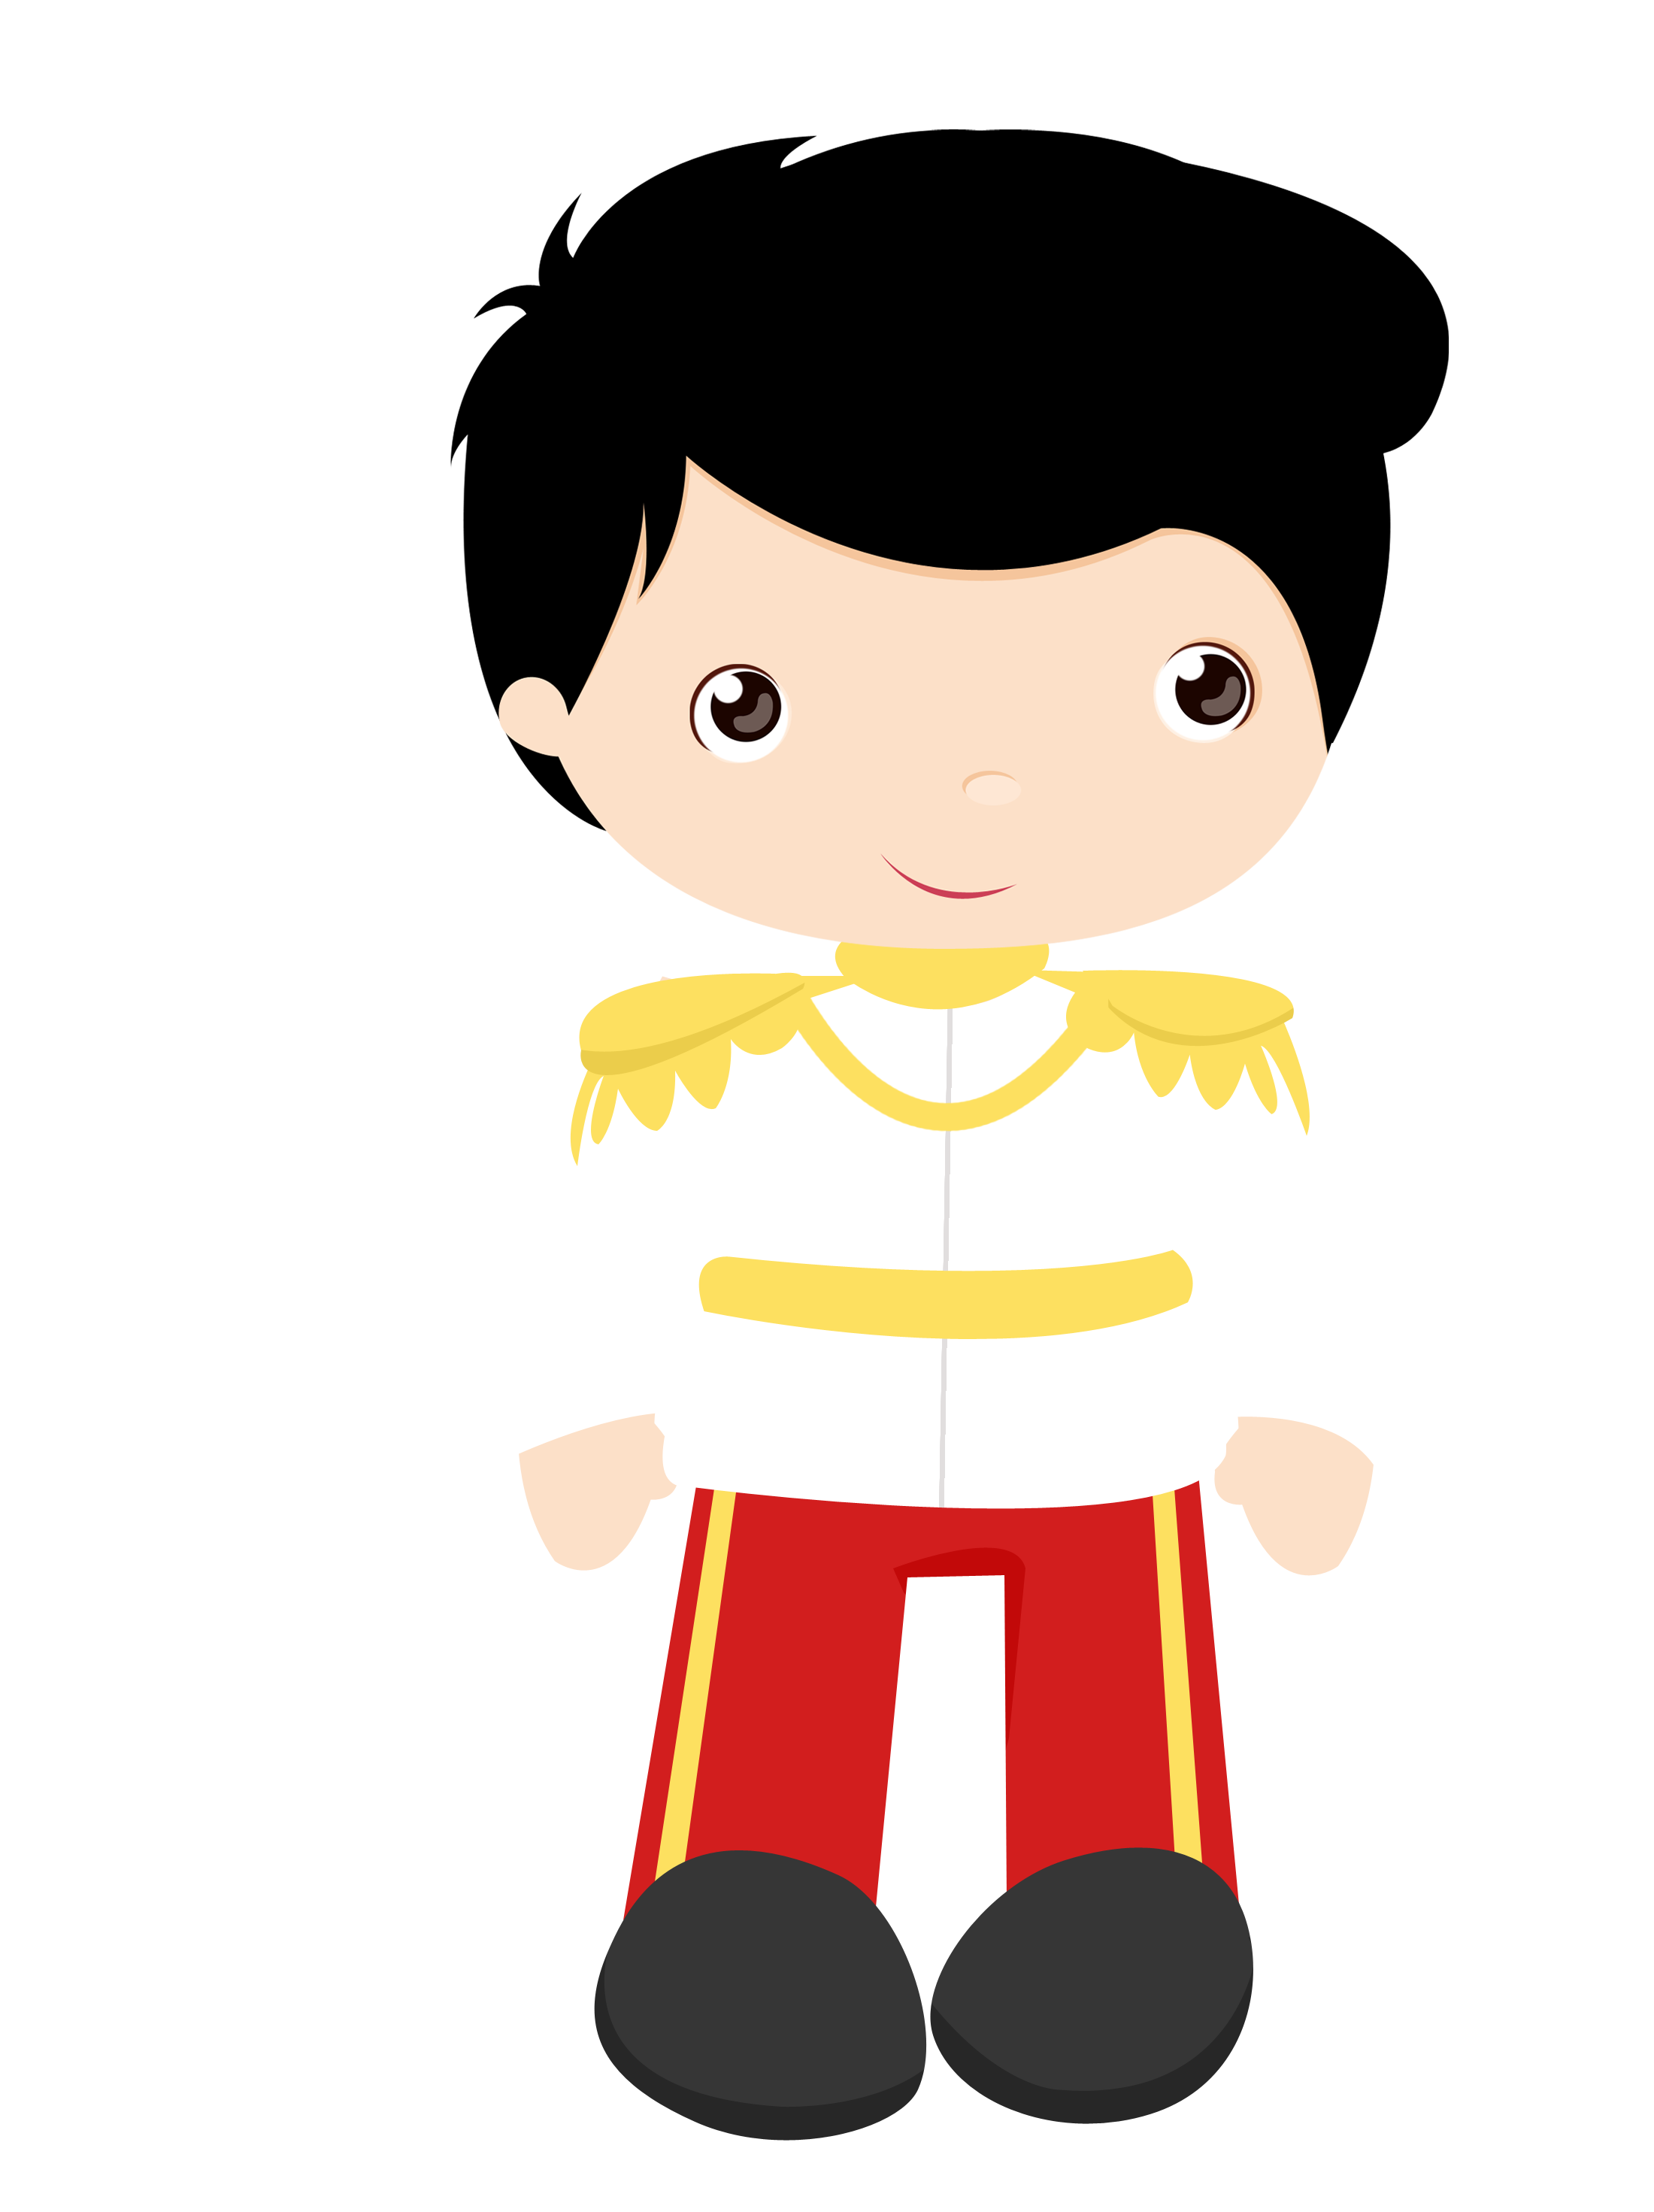 Prince clipart baby boy. Related image princesses pinterest